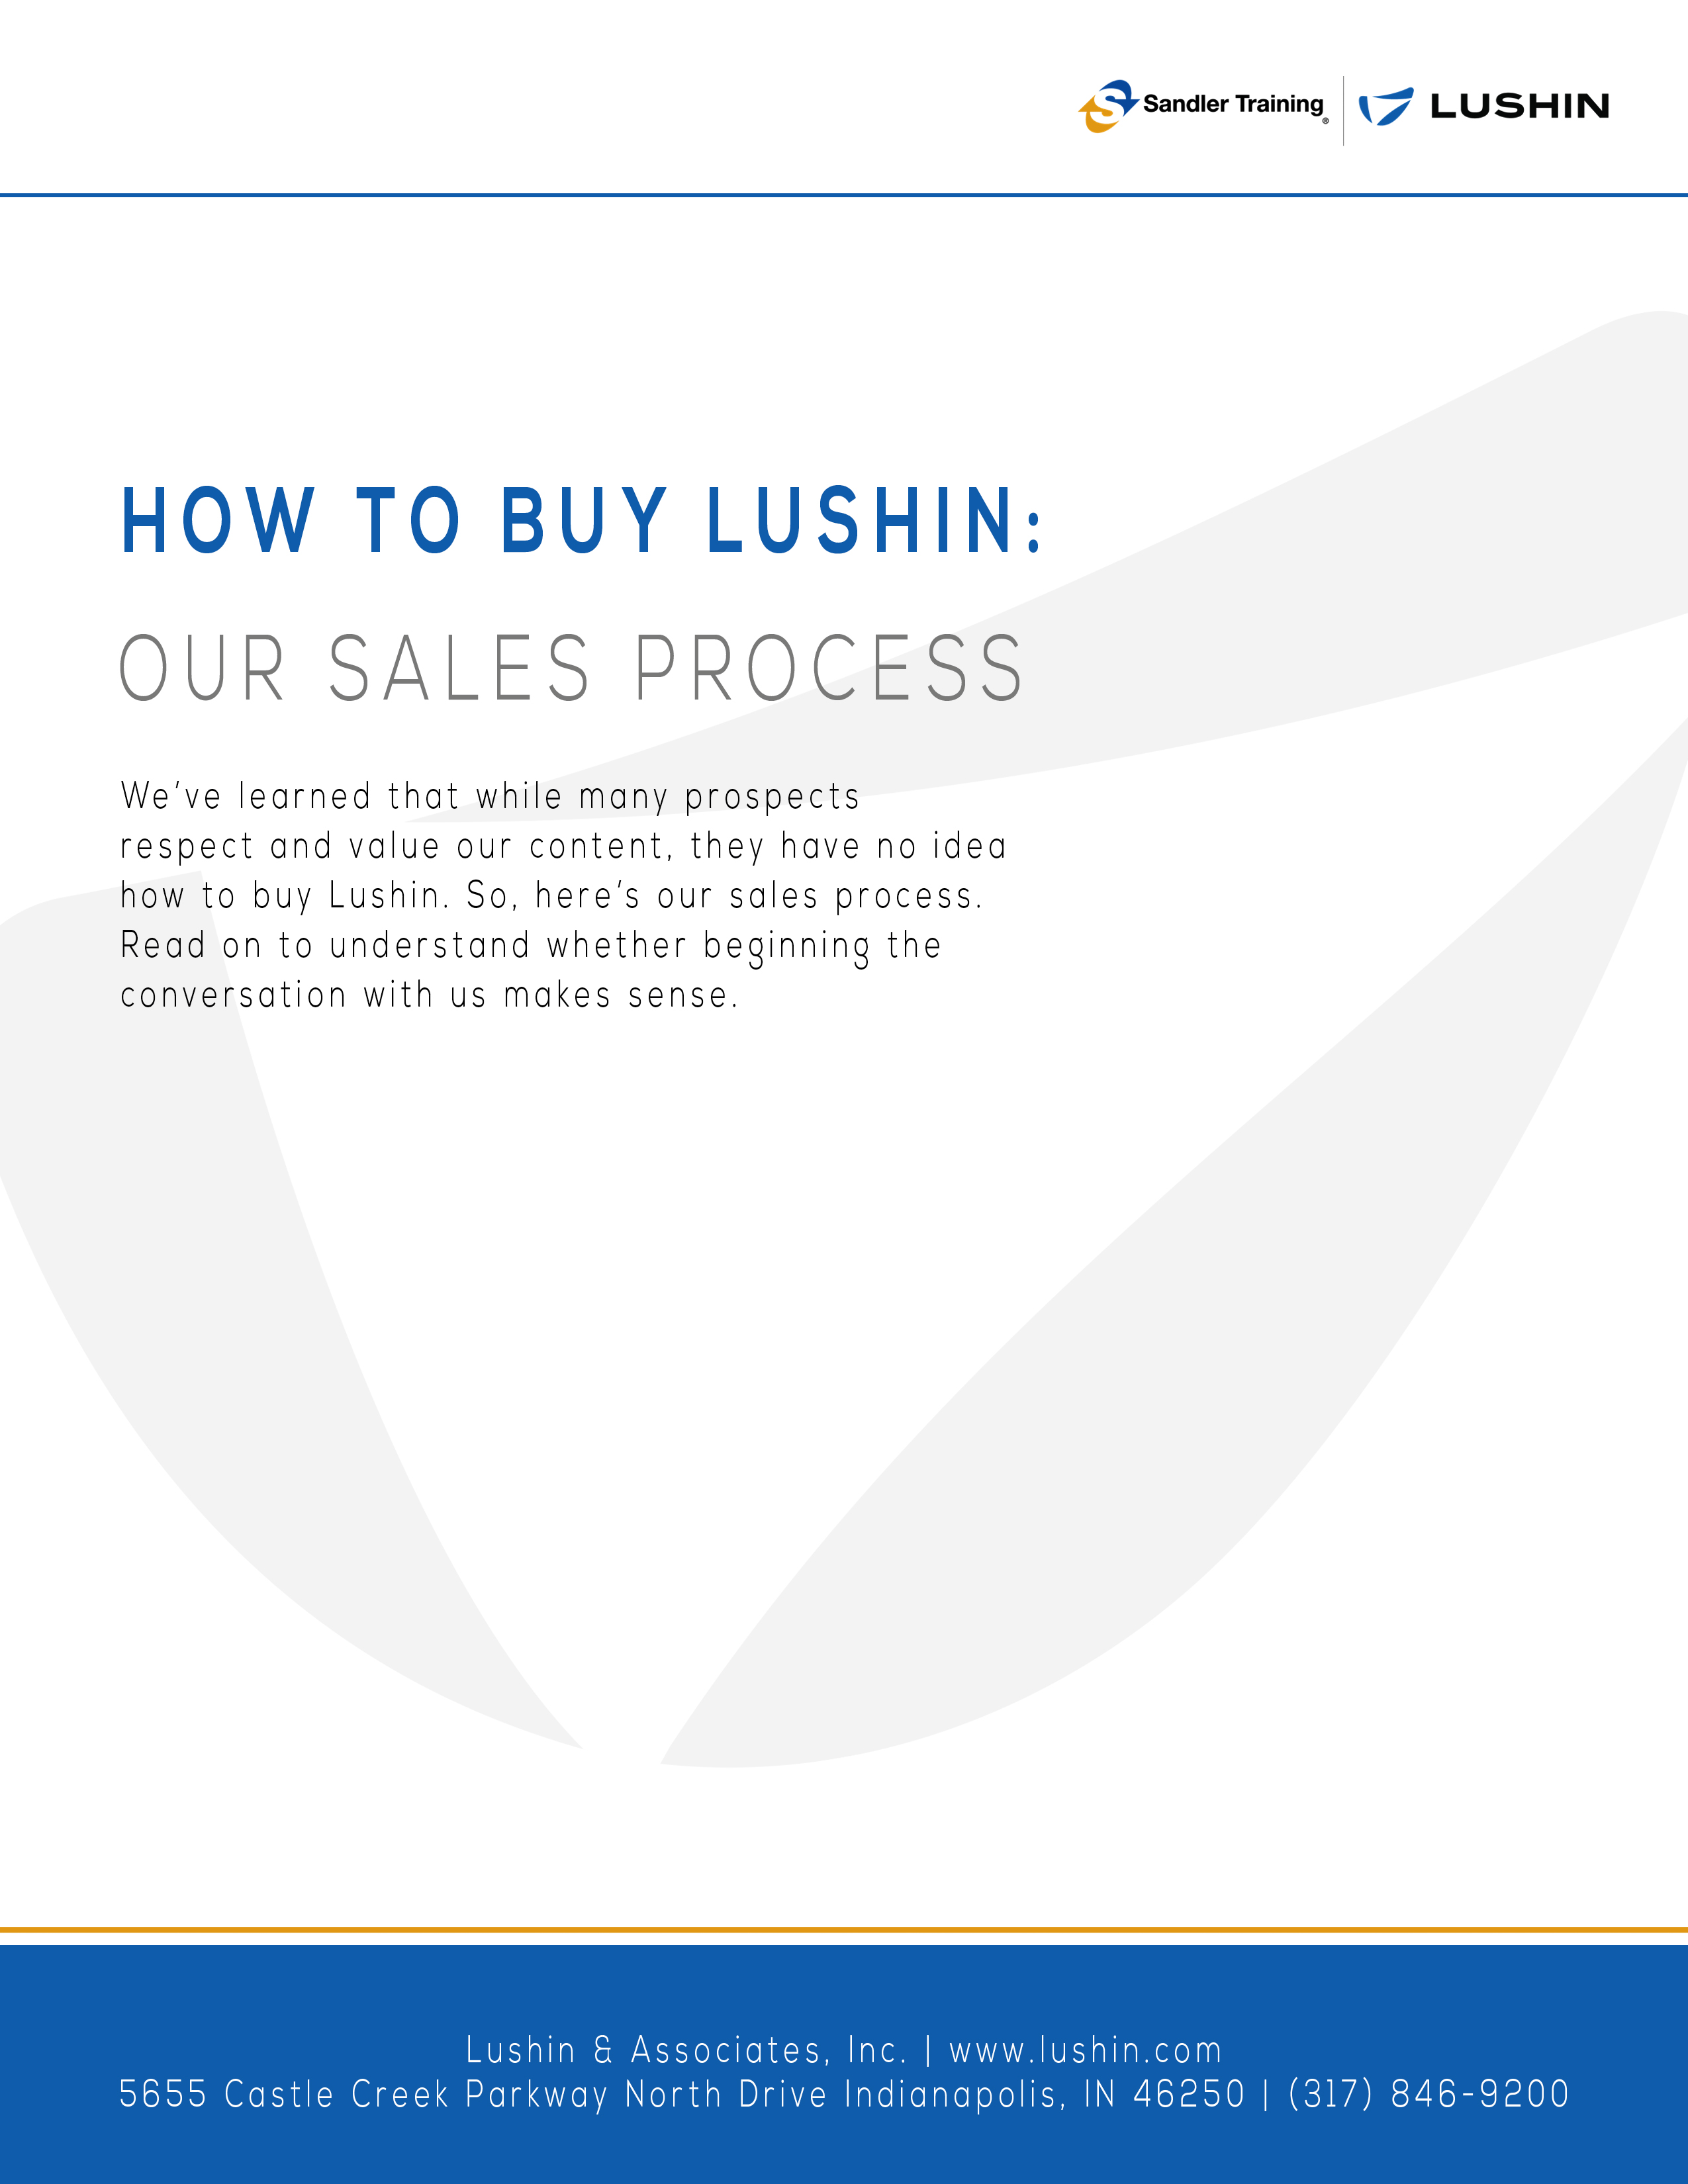 How to Buy Lushin Template